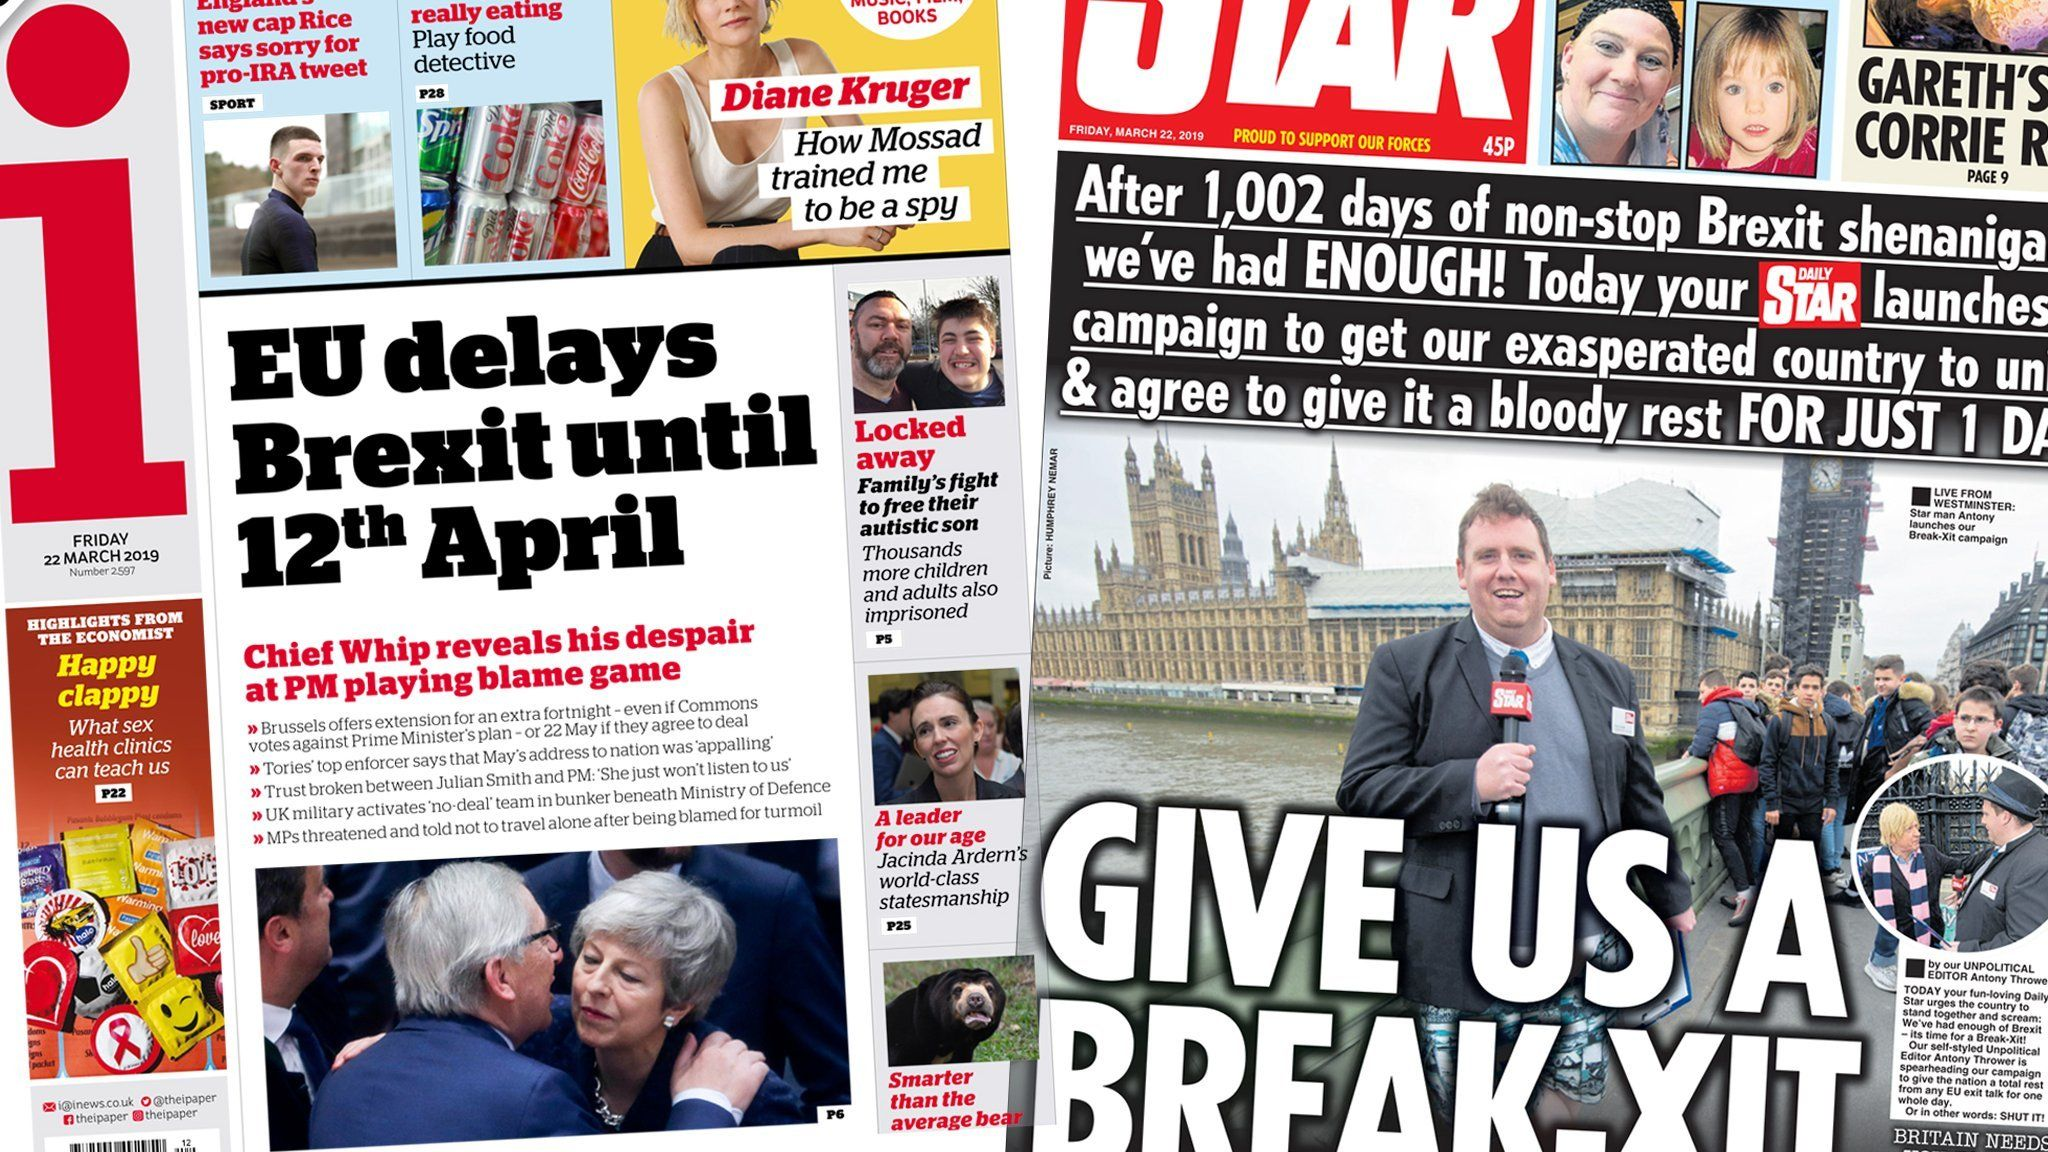 The i and the Daily Star